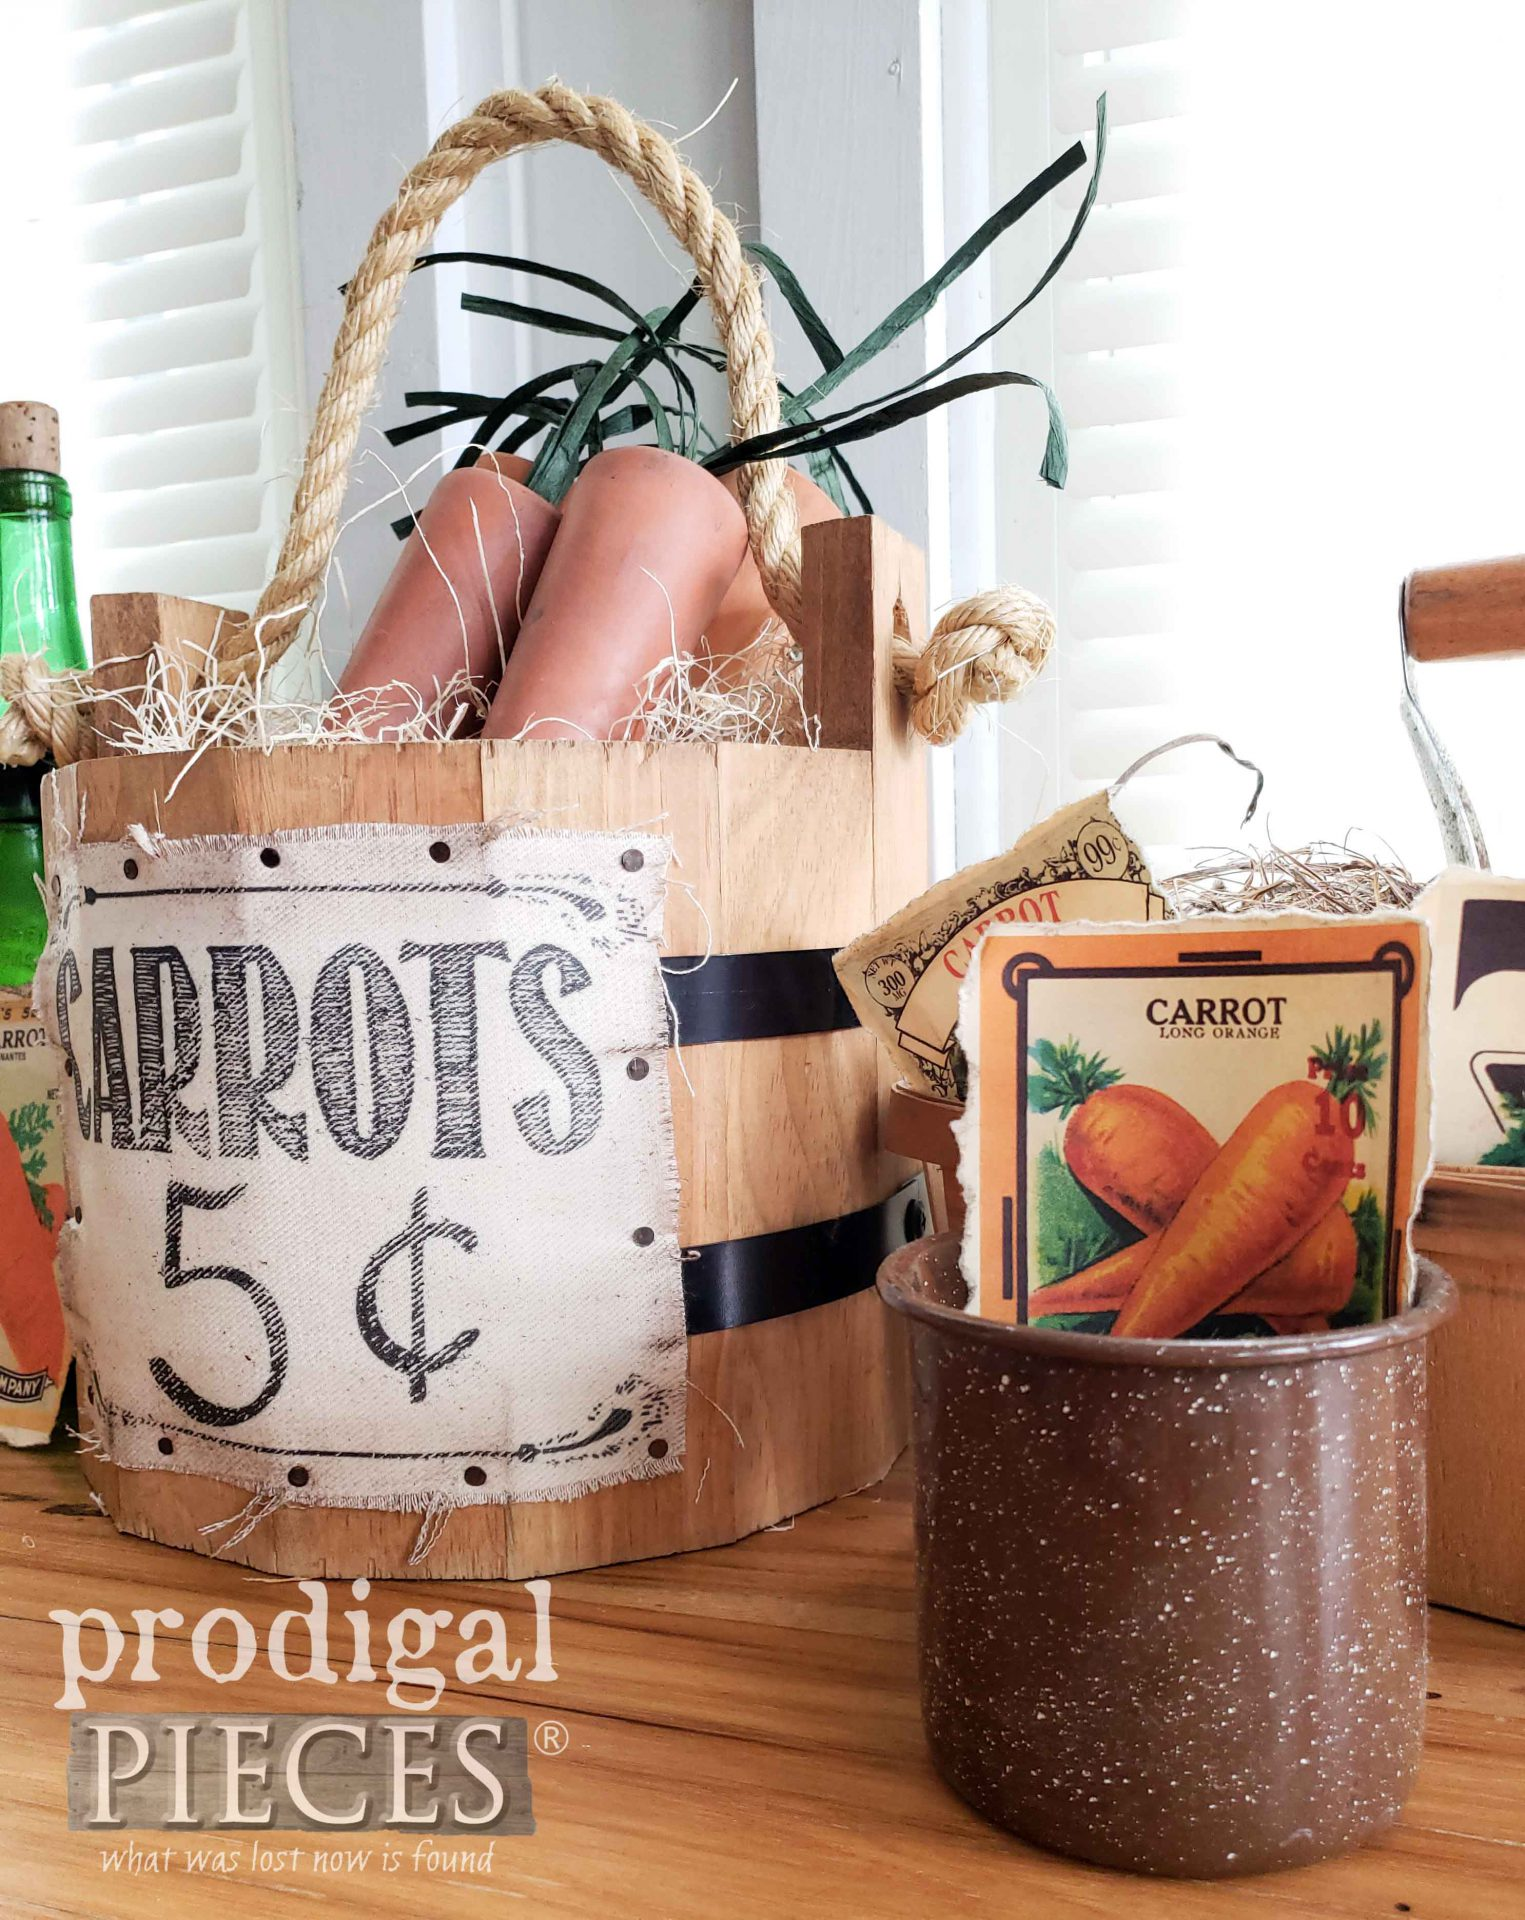 Farmhouse Spring Carrots for Farmhouse Decor by Larissa of Prodigal Pieces | prodigalpieces.com #prodigalpieces #crafts #spring #homedecor